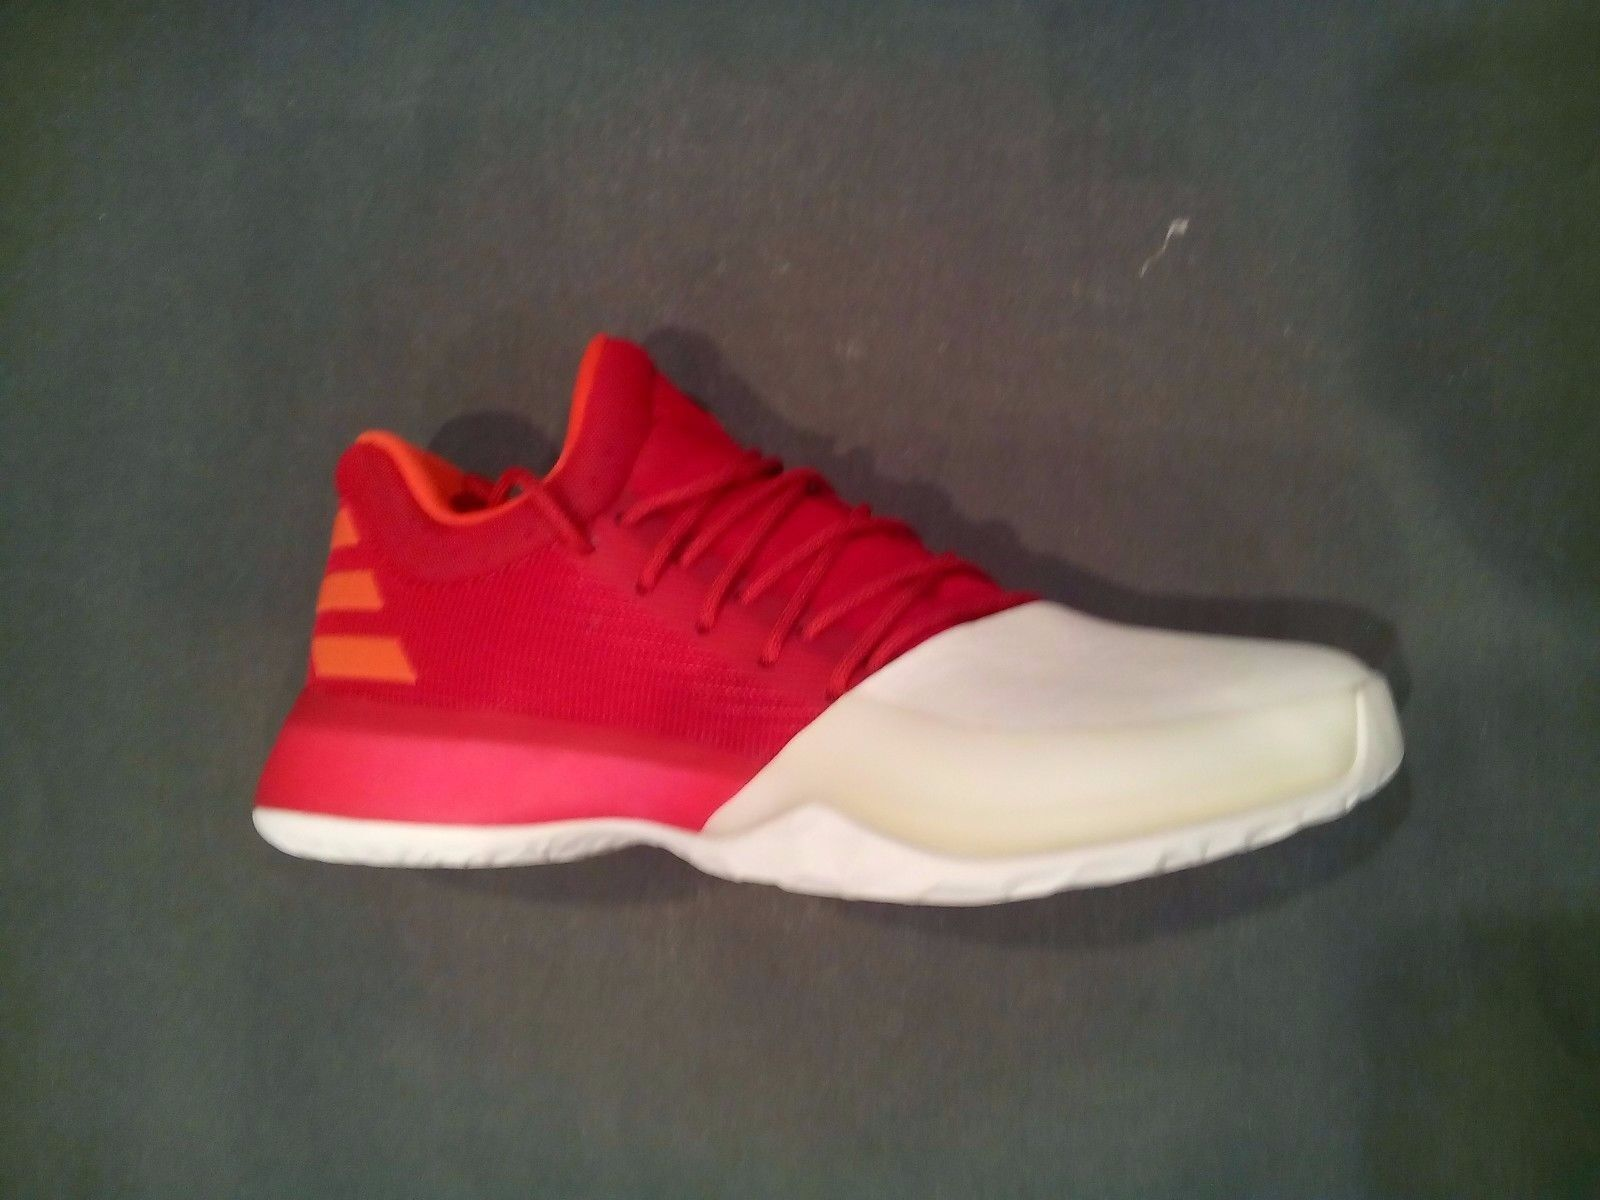 cecb67aba Adidas Boost James Harden Vol. Vol. Vol. 1 Basketball shoes Red White (